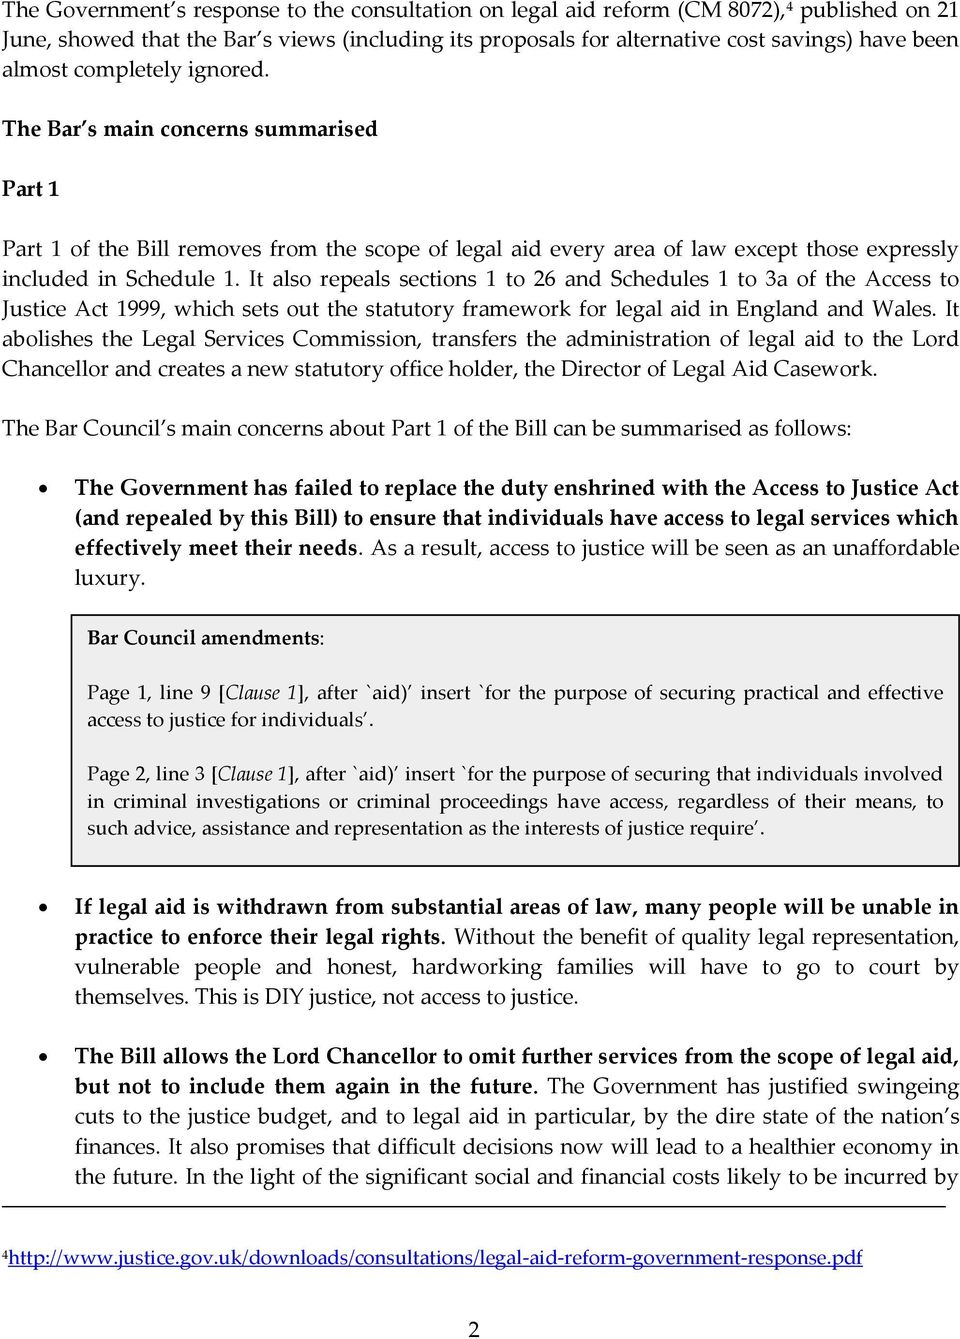 It also repeals sections 1 to 26 and Schedules 1 to 3a of the Access to Justice Act 1999, which sets out the statutory framework for legal aid in England and Wales.